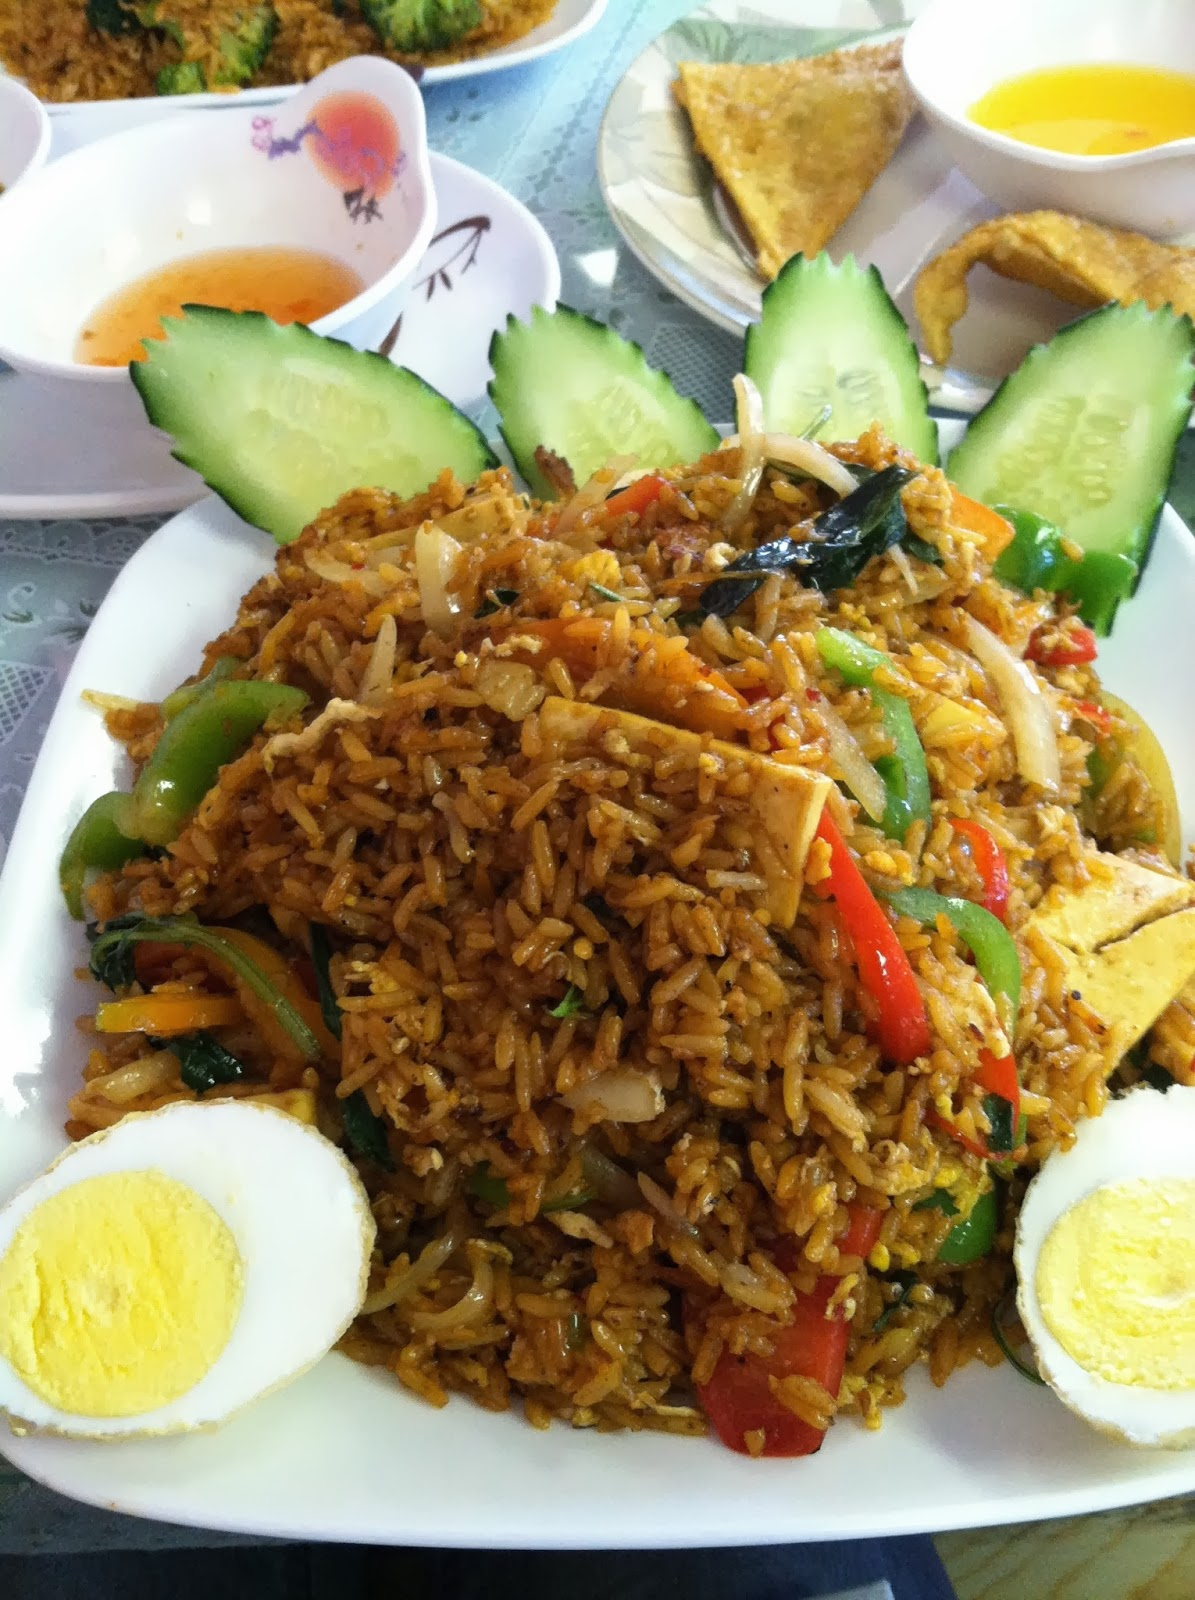 Thai, Thai food, fried rice, veggies, vegetarian, vegetables, egg